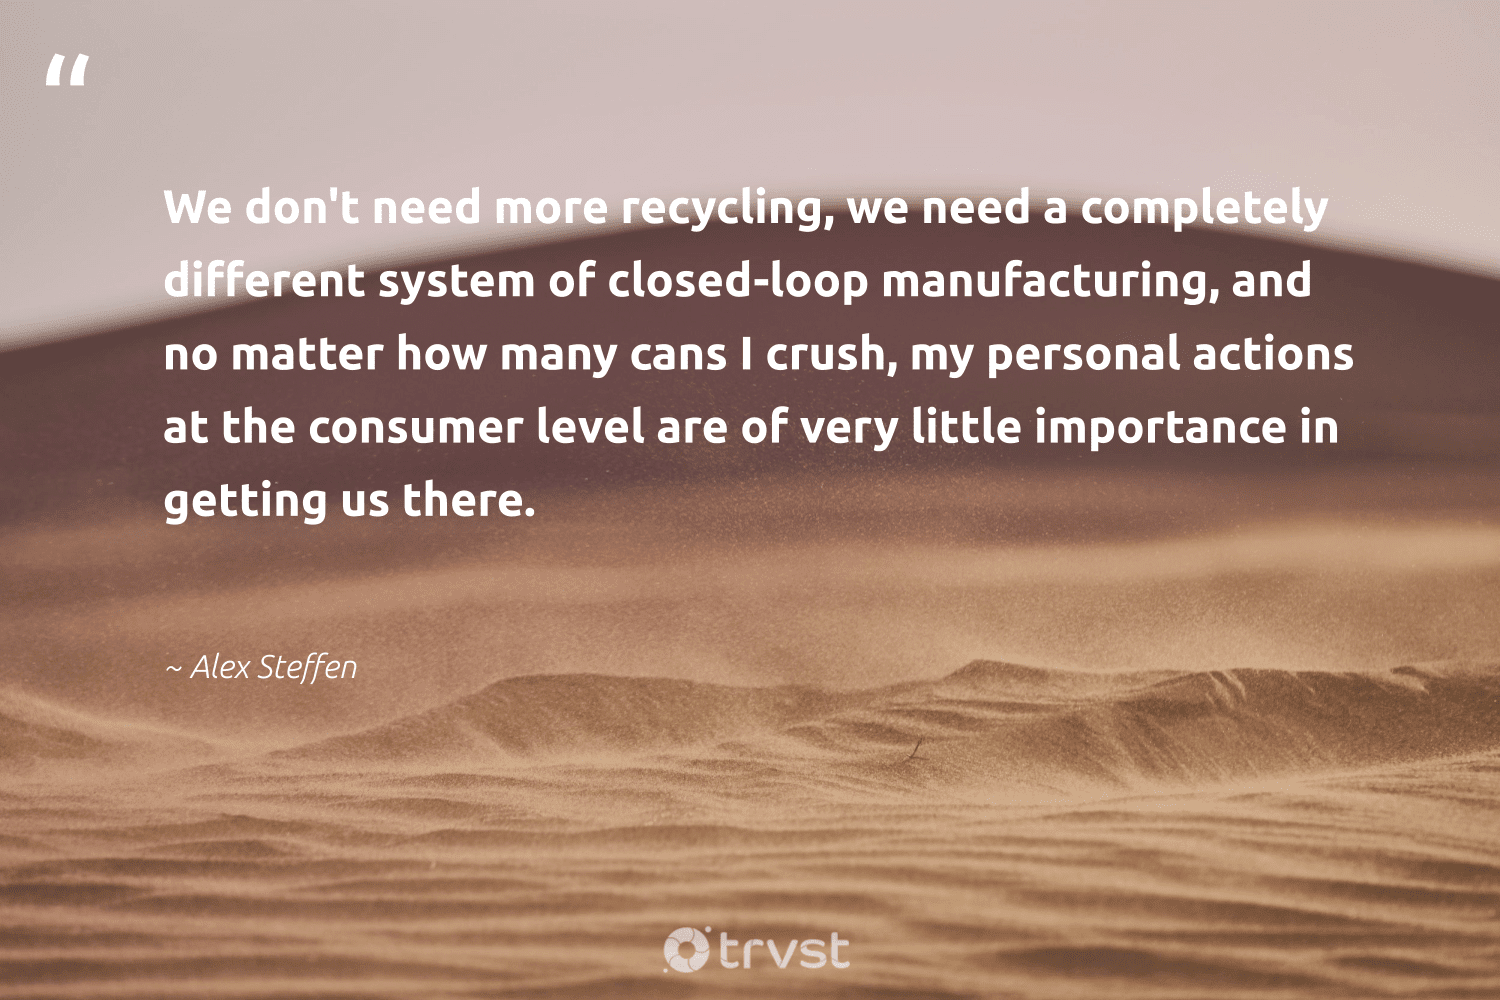 """""""We don't need more recycling, we need a completely different system of closed-loop manufacturing, and no matter how many cans I crush, my personal actions at the consumer level are of very little importance in getting us there.""""  - Alex Steffen #trvst #quotes #recycling #recycled #changeahabit #environment #ecoconscious #refuse #sustainability #gogreen #thinkgreen #upcycle"""